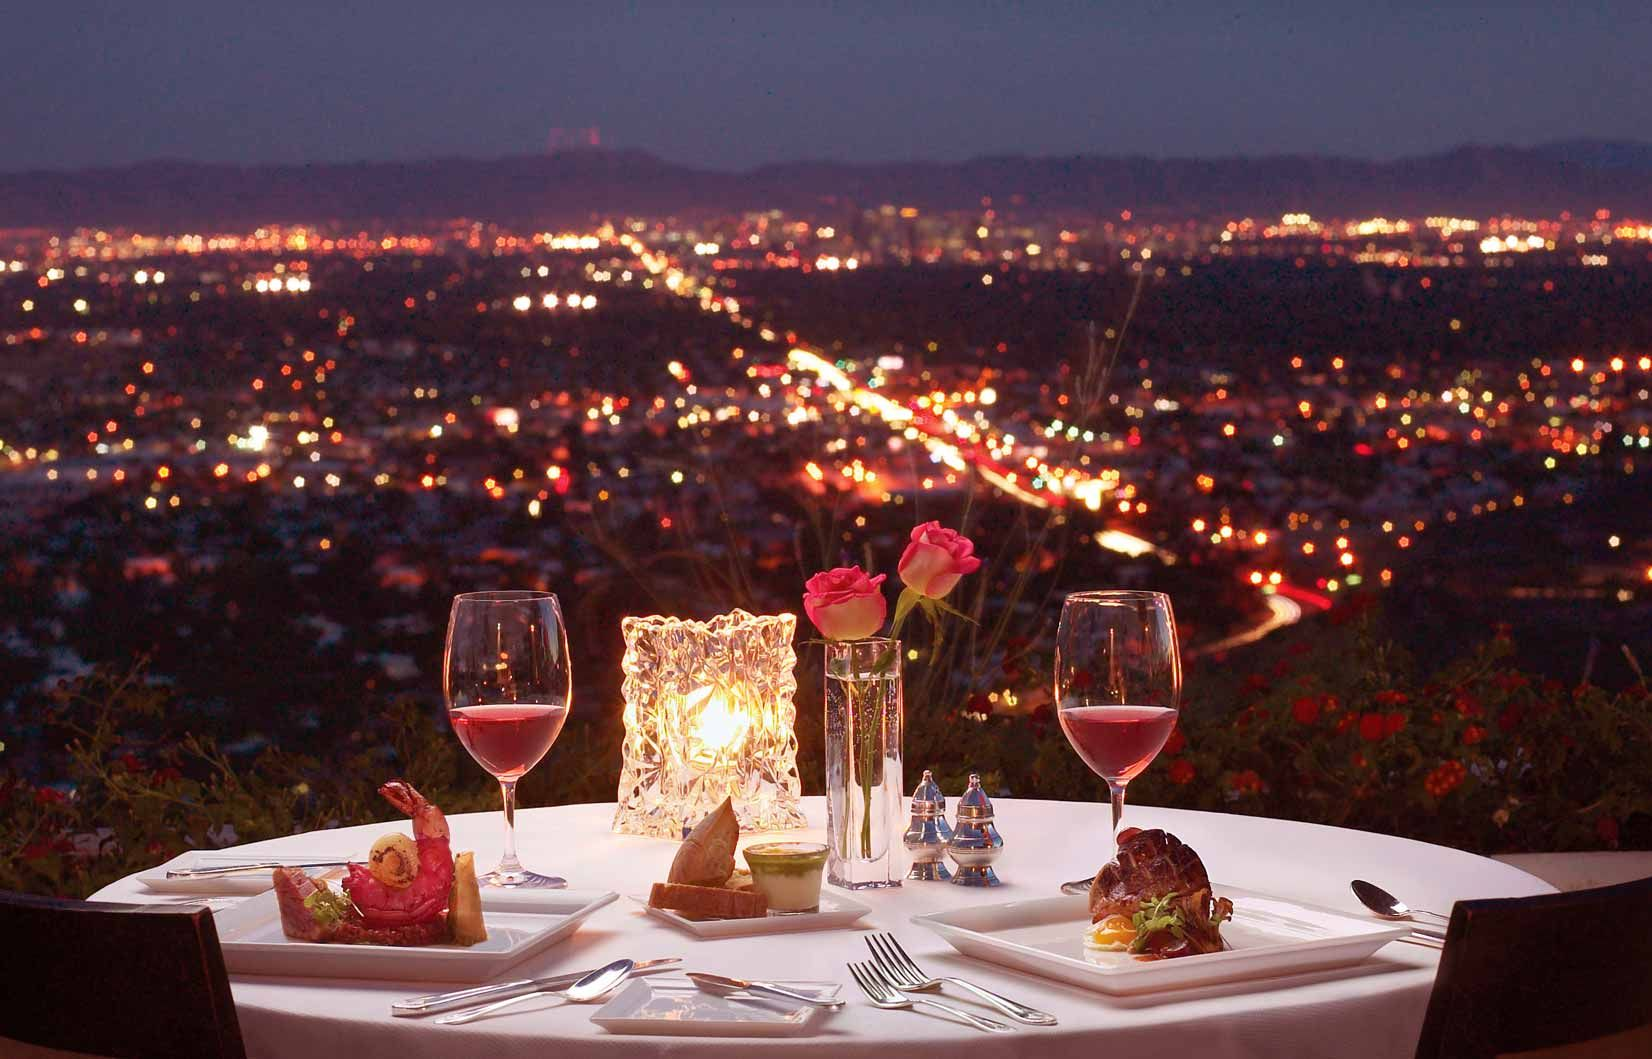 We have listed top #romantic restaurants to Celebrate ...